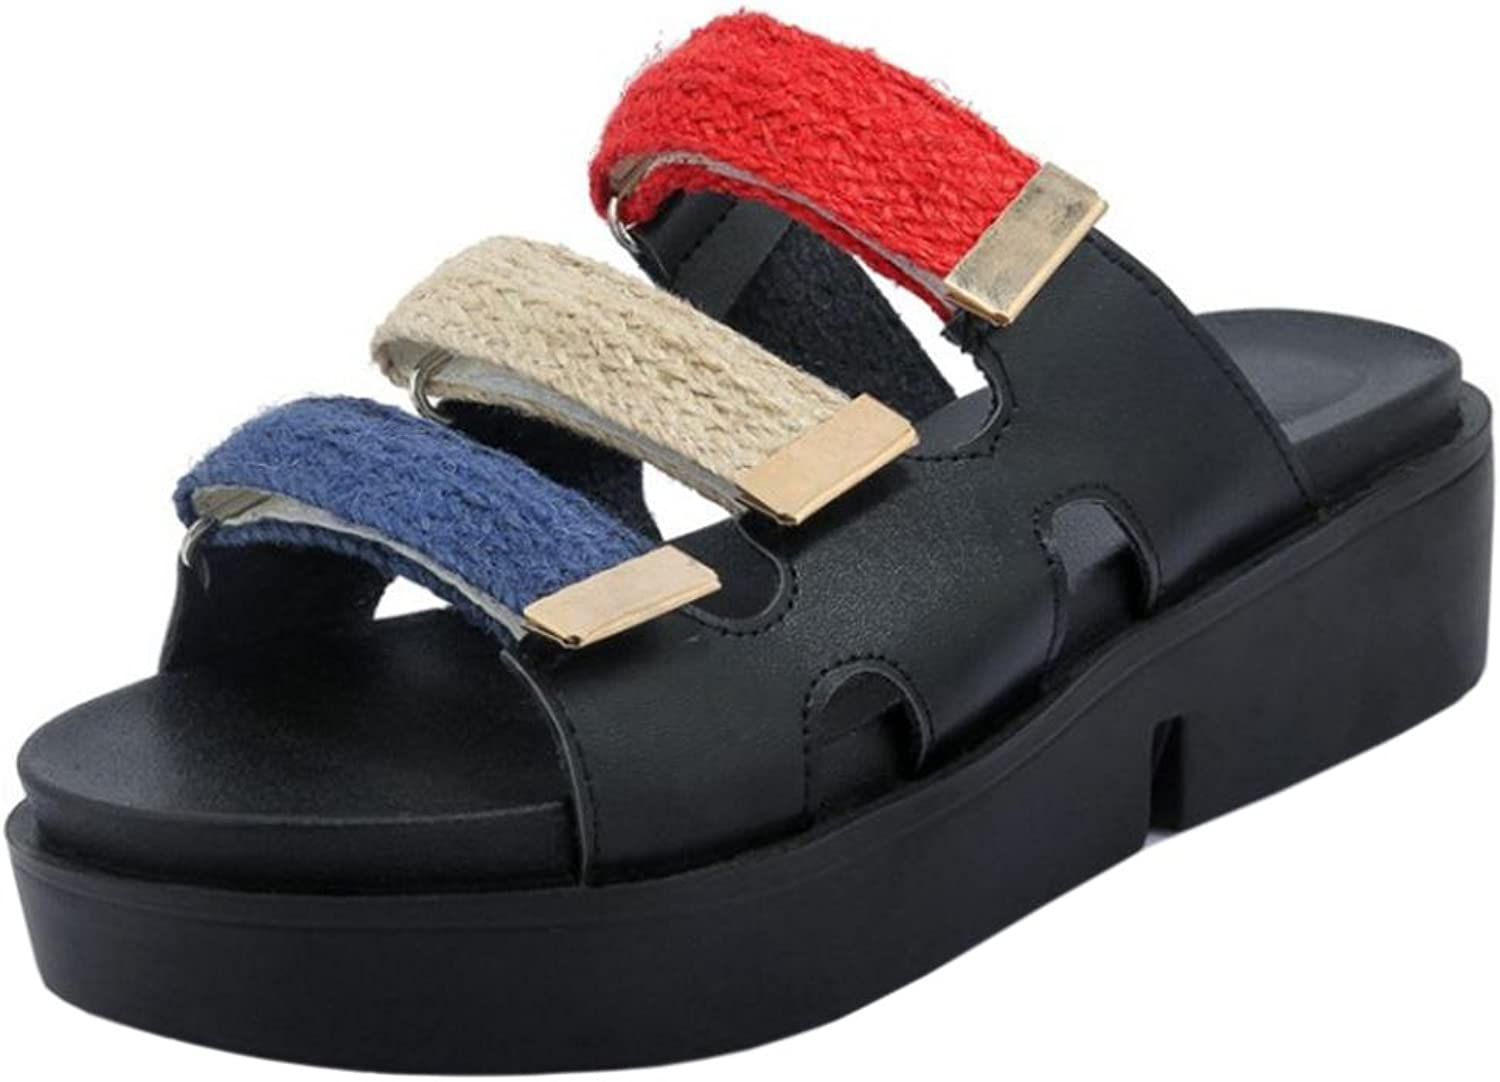 RizaBina Women Unisex Buckle Sandals